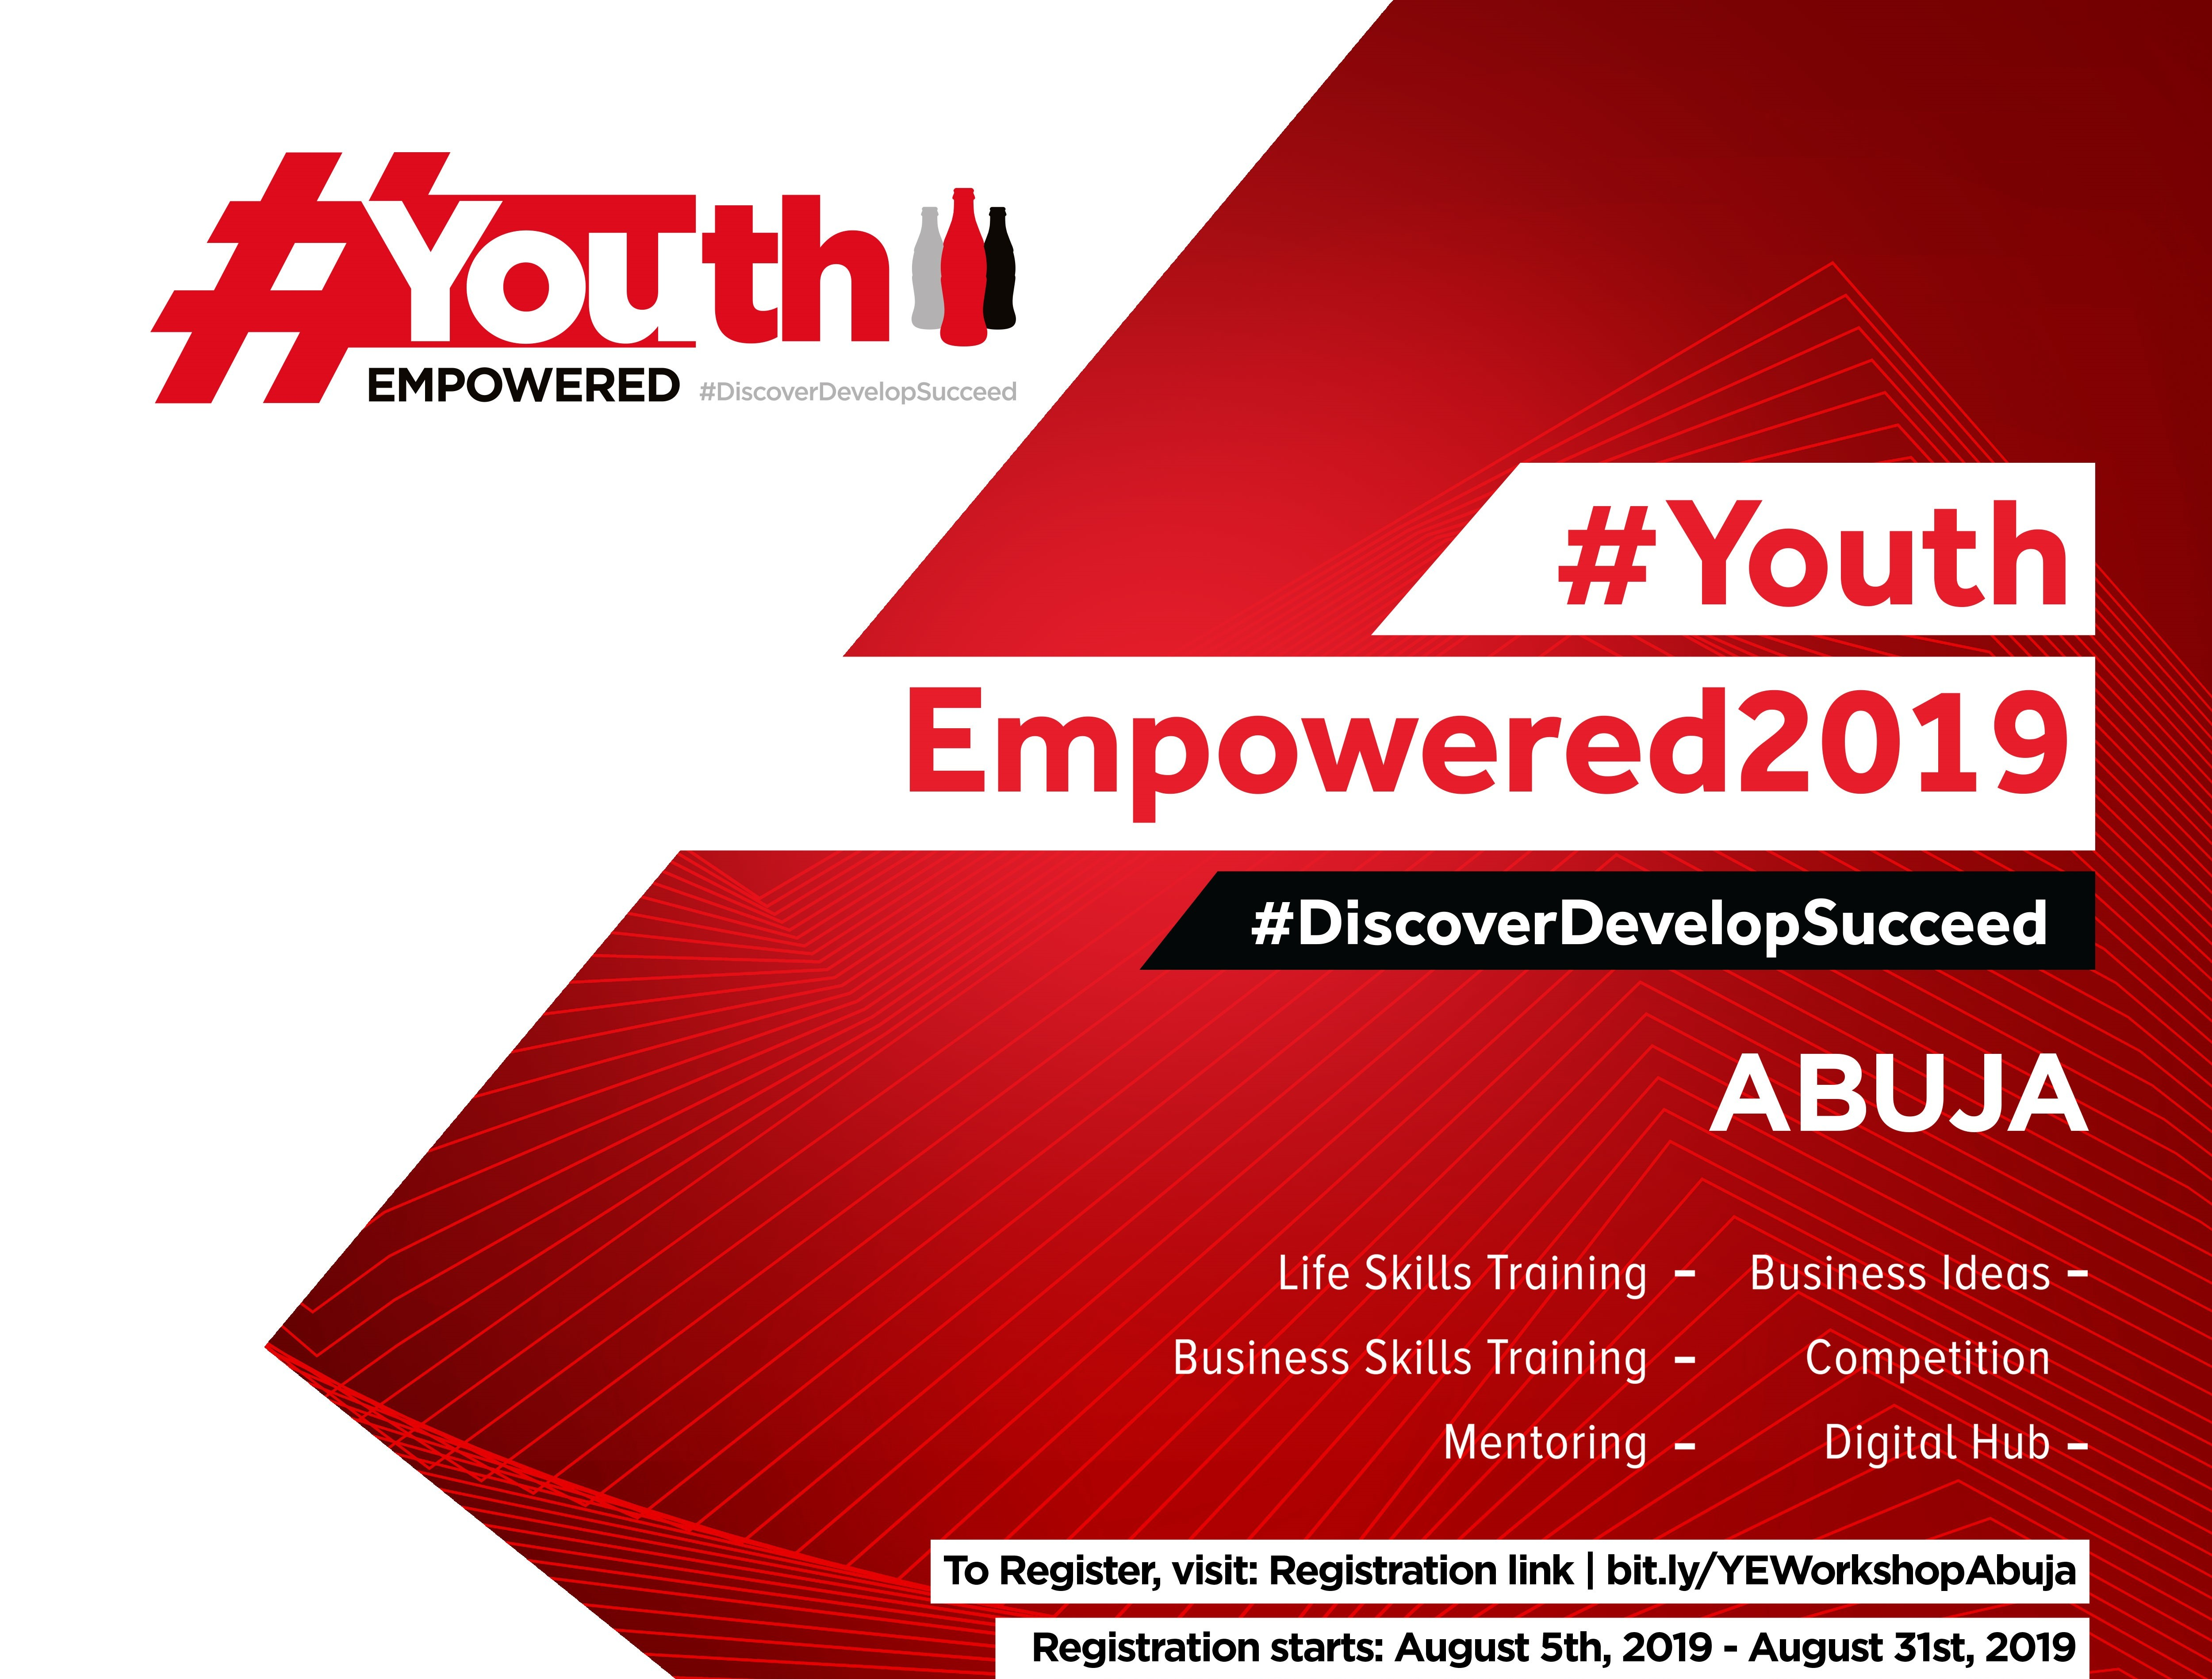 NBC Youth Empowered Workshop Abuja 2019